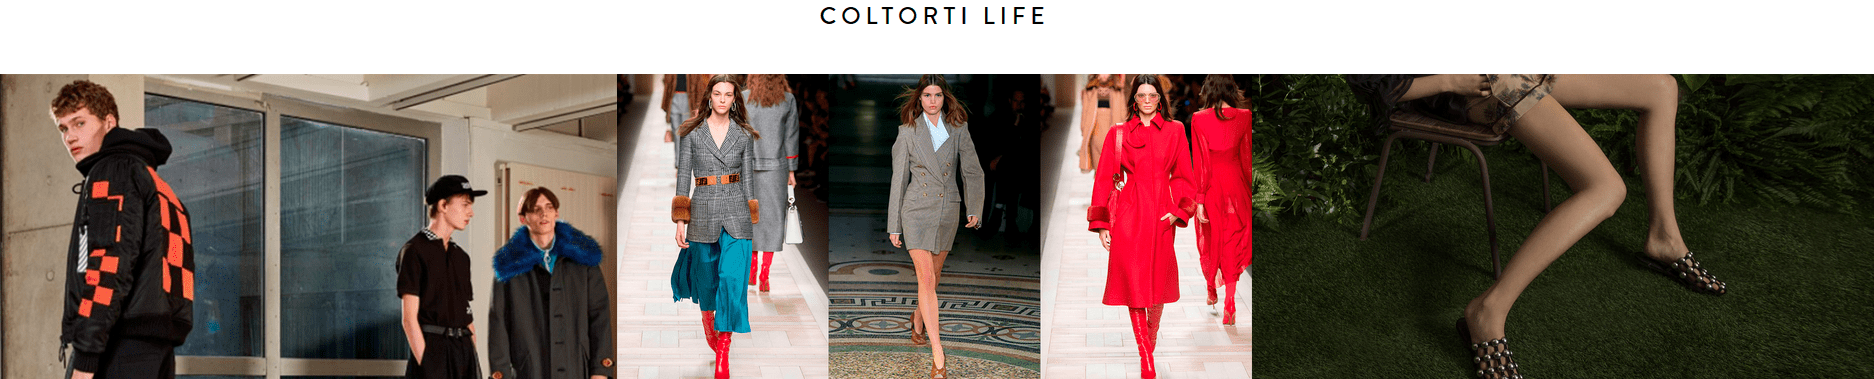 Coltorti's lifestyle products